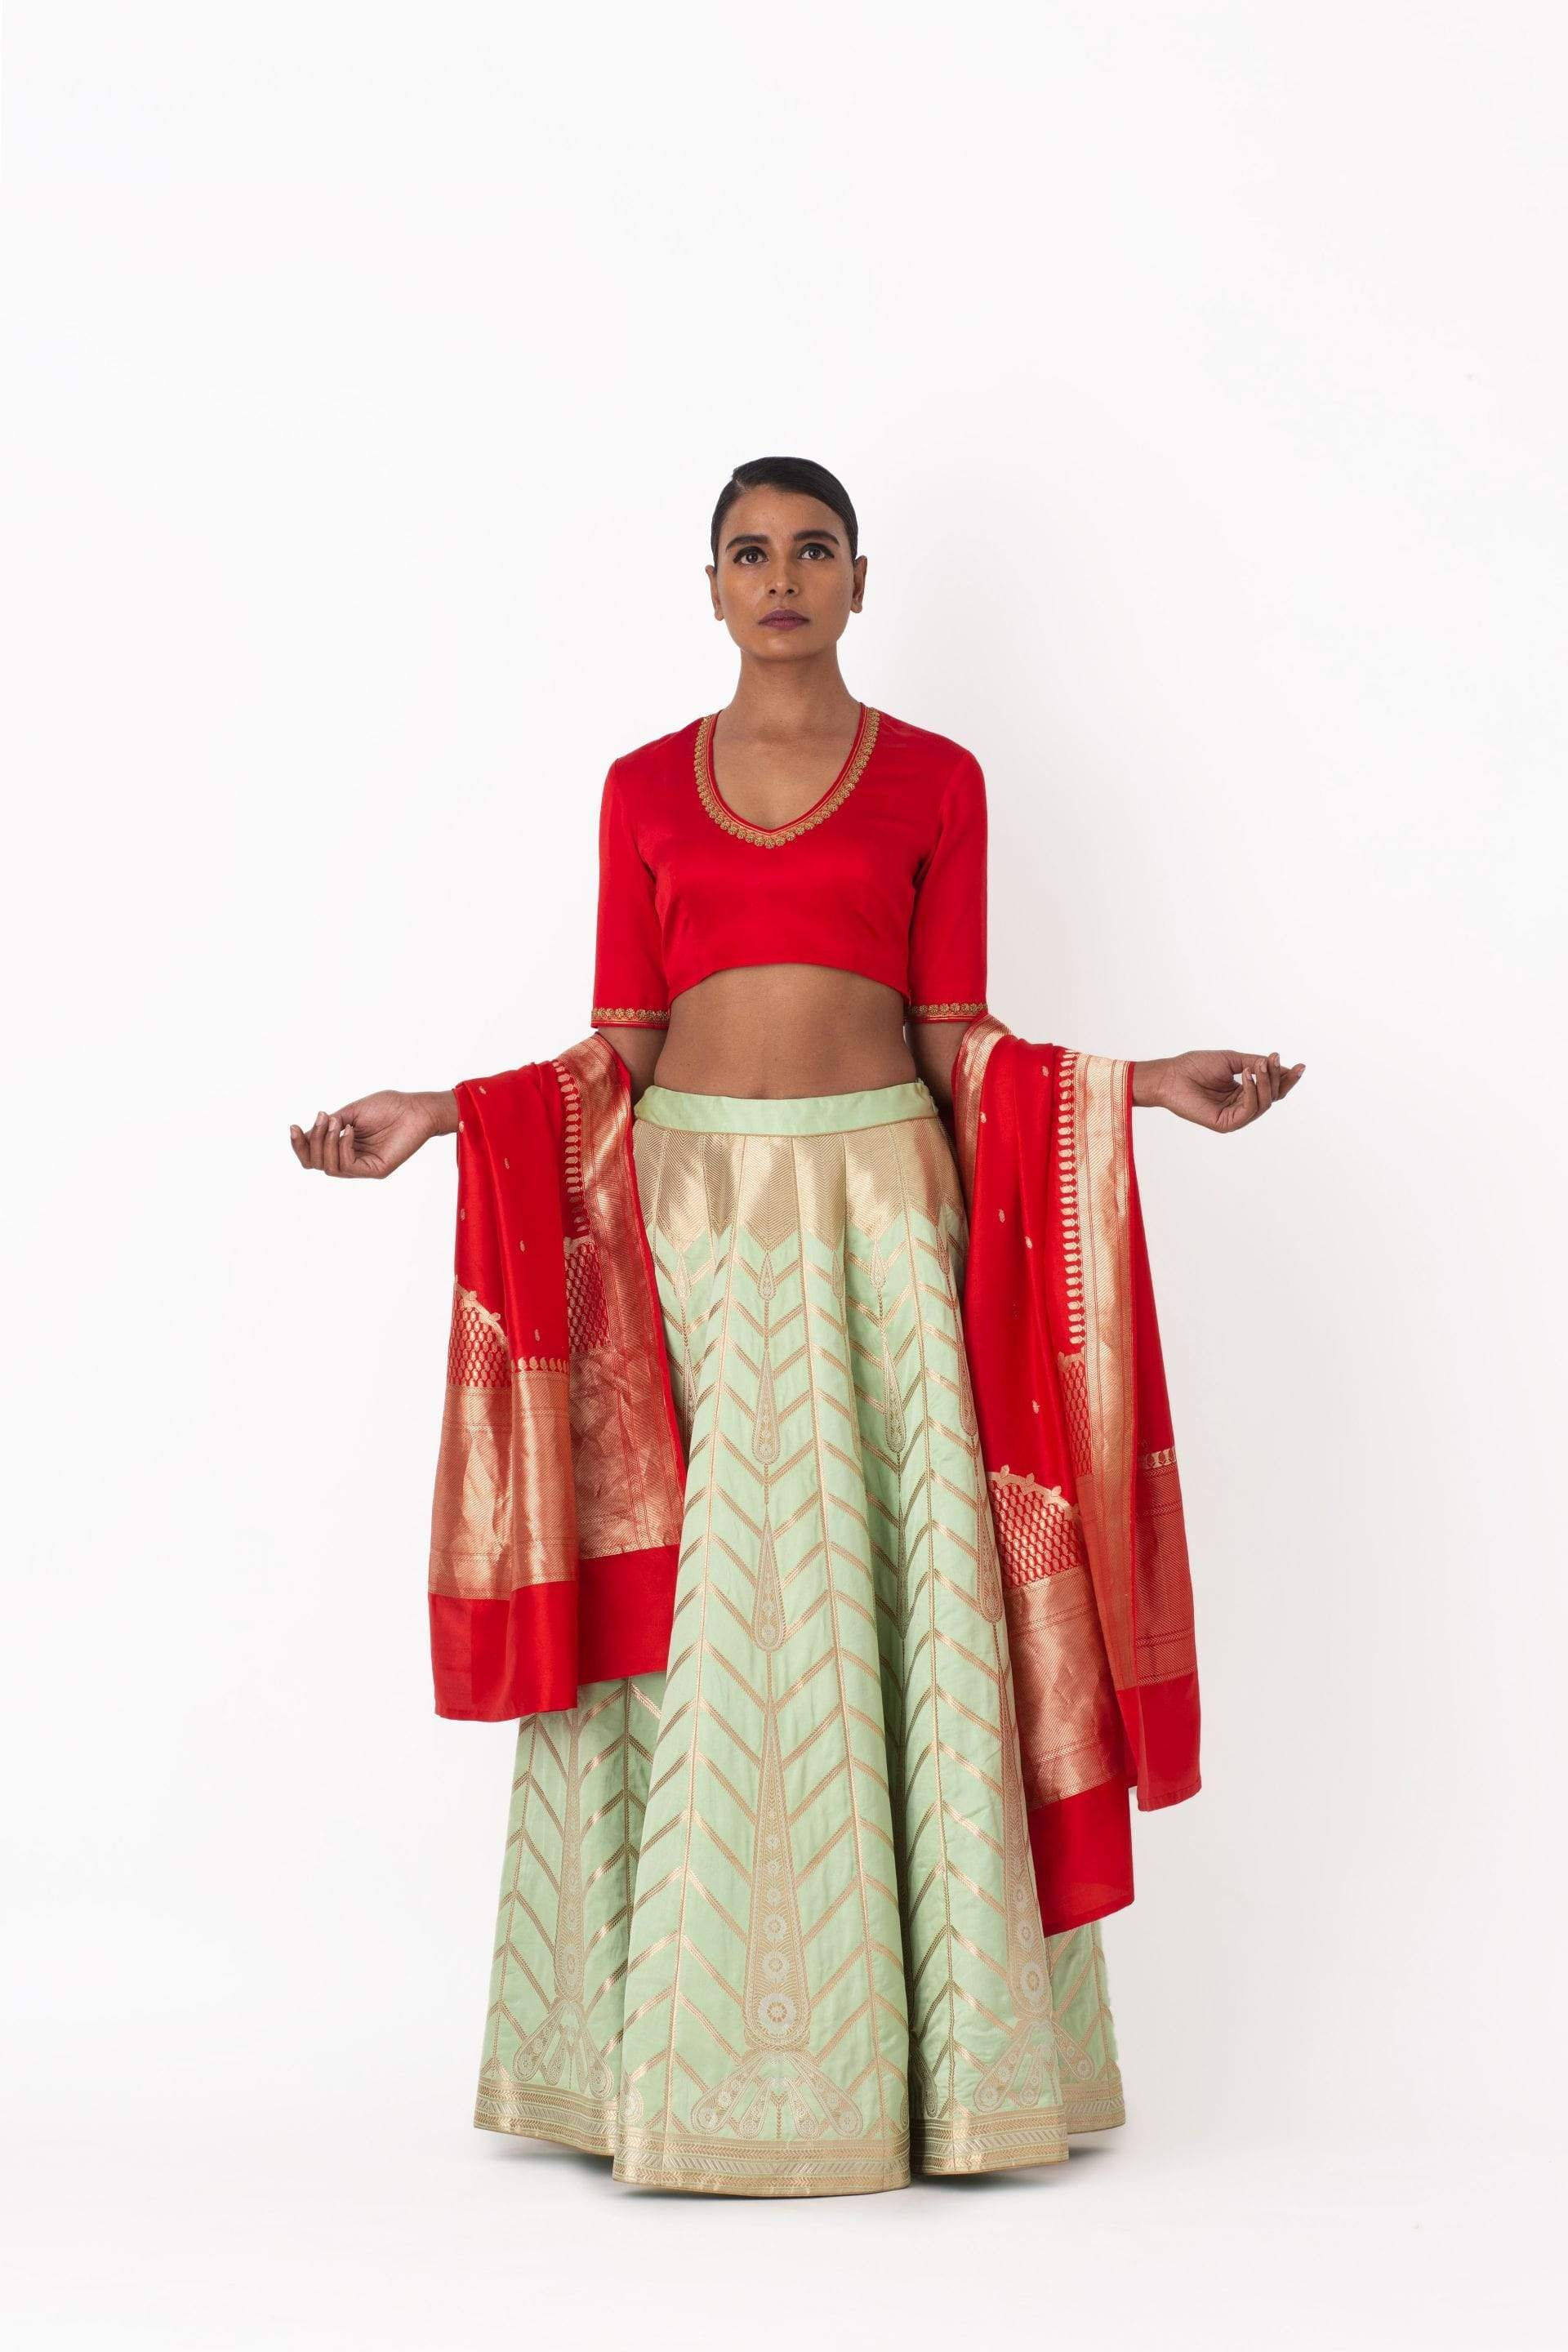 Raw Mango Light Lehengas Mansoor & Hakim lehenga set